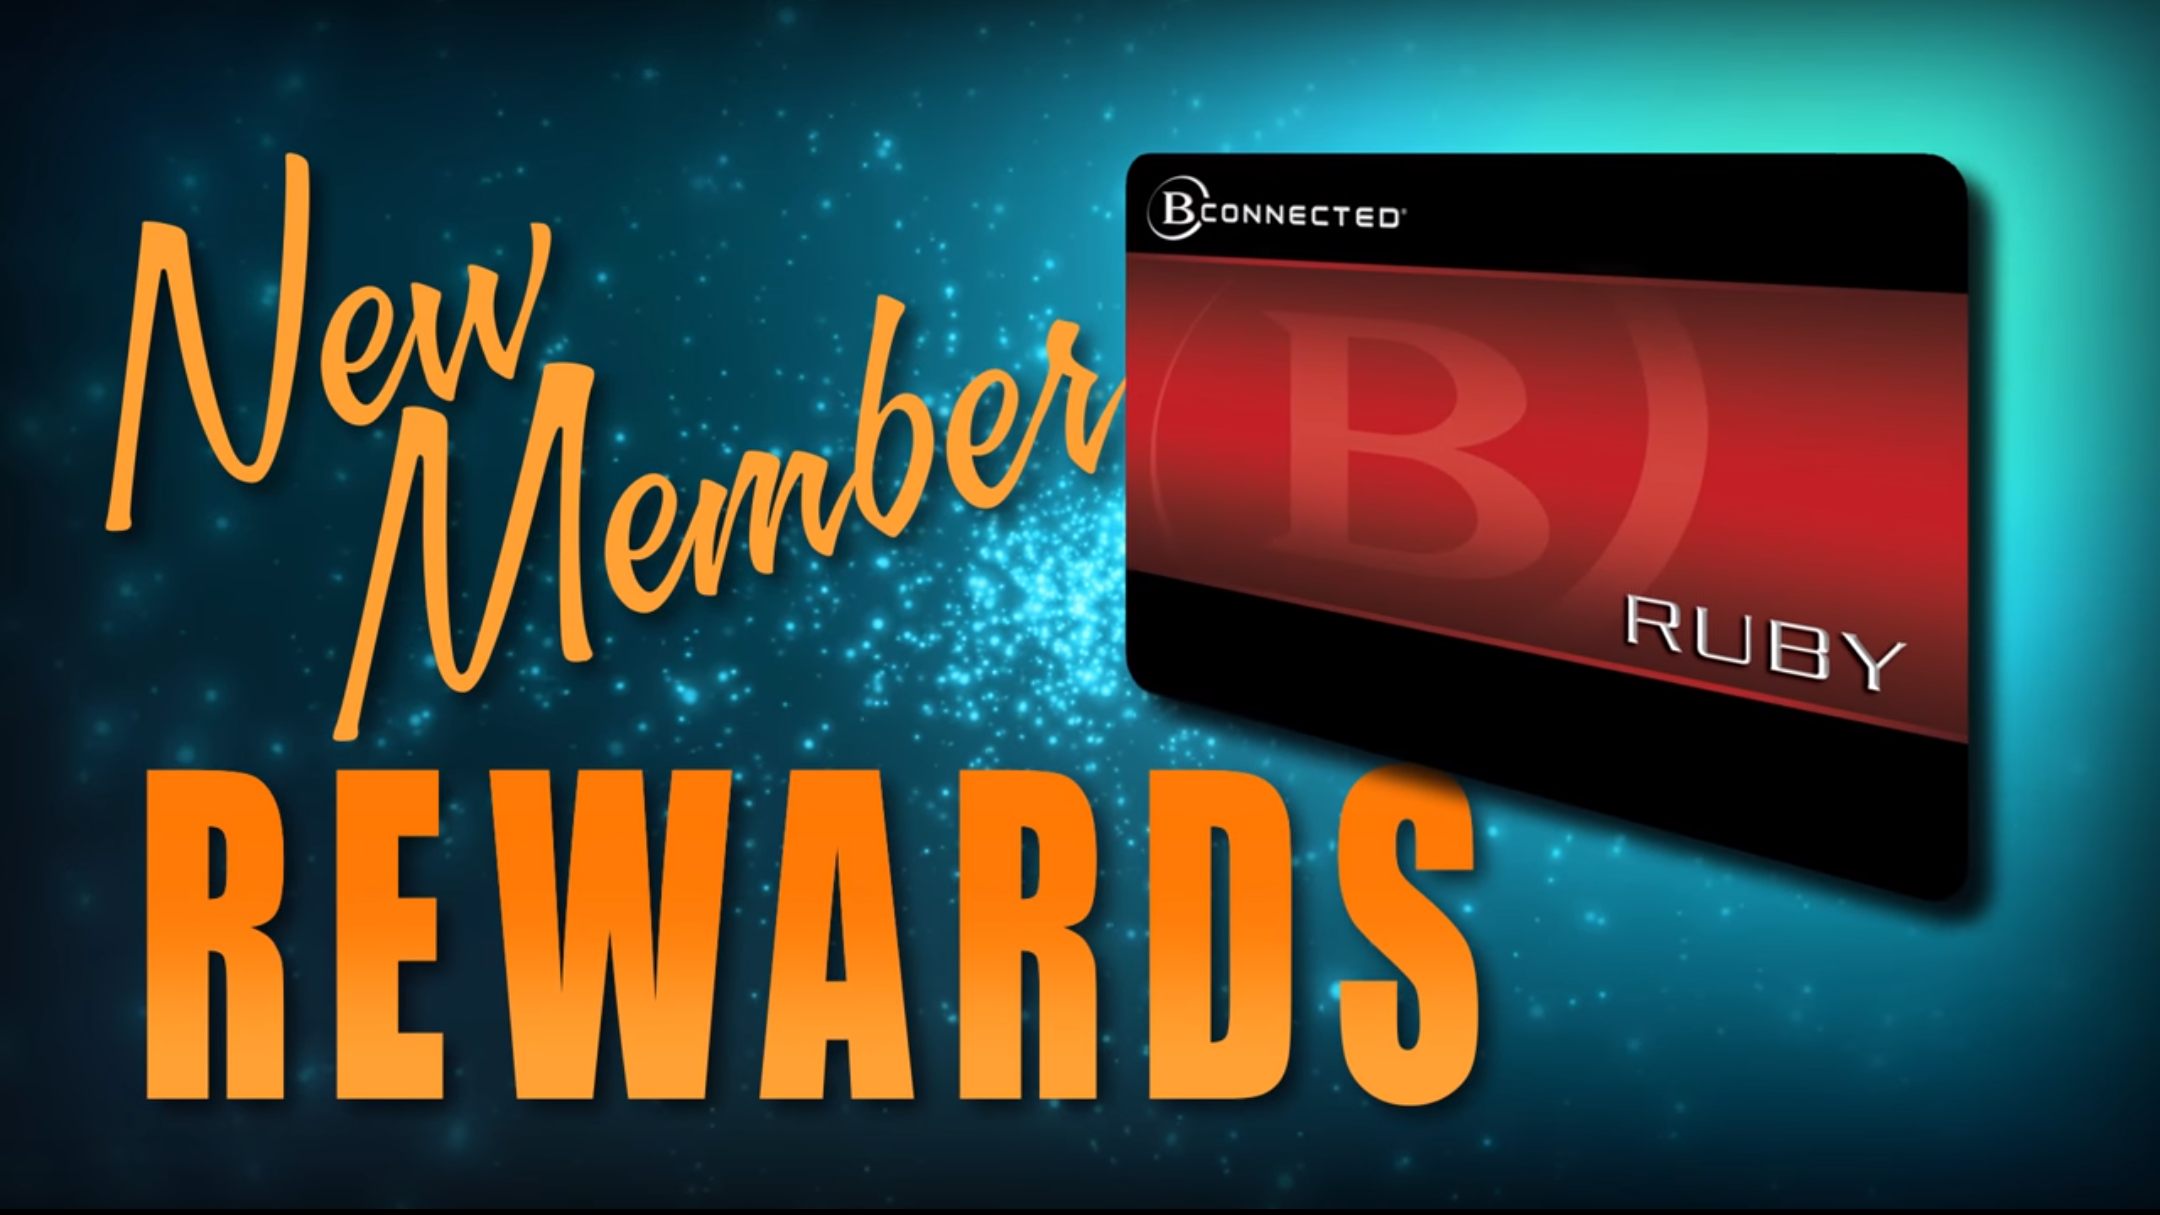 Motion graphics sample. New member special rewards advertisement for May 2016.